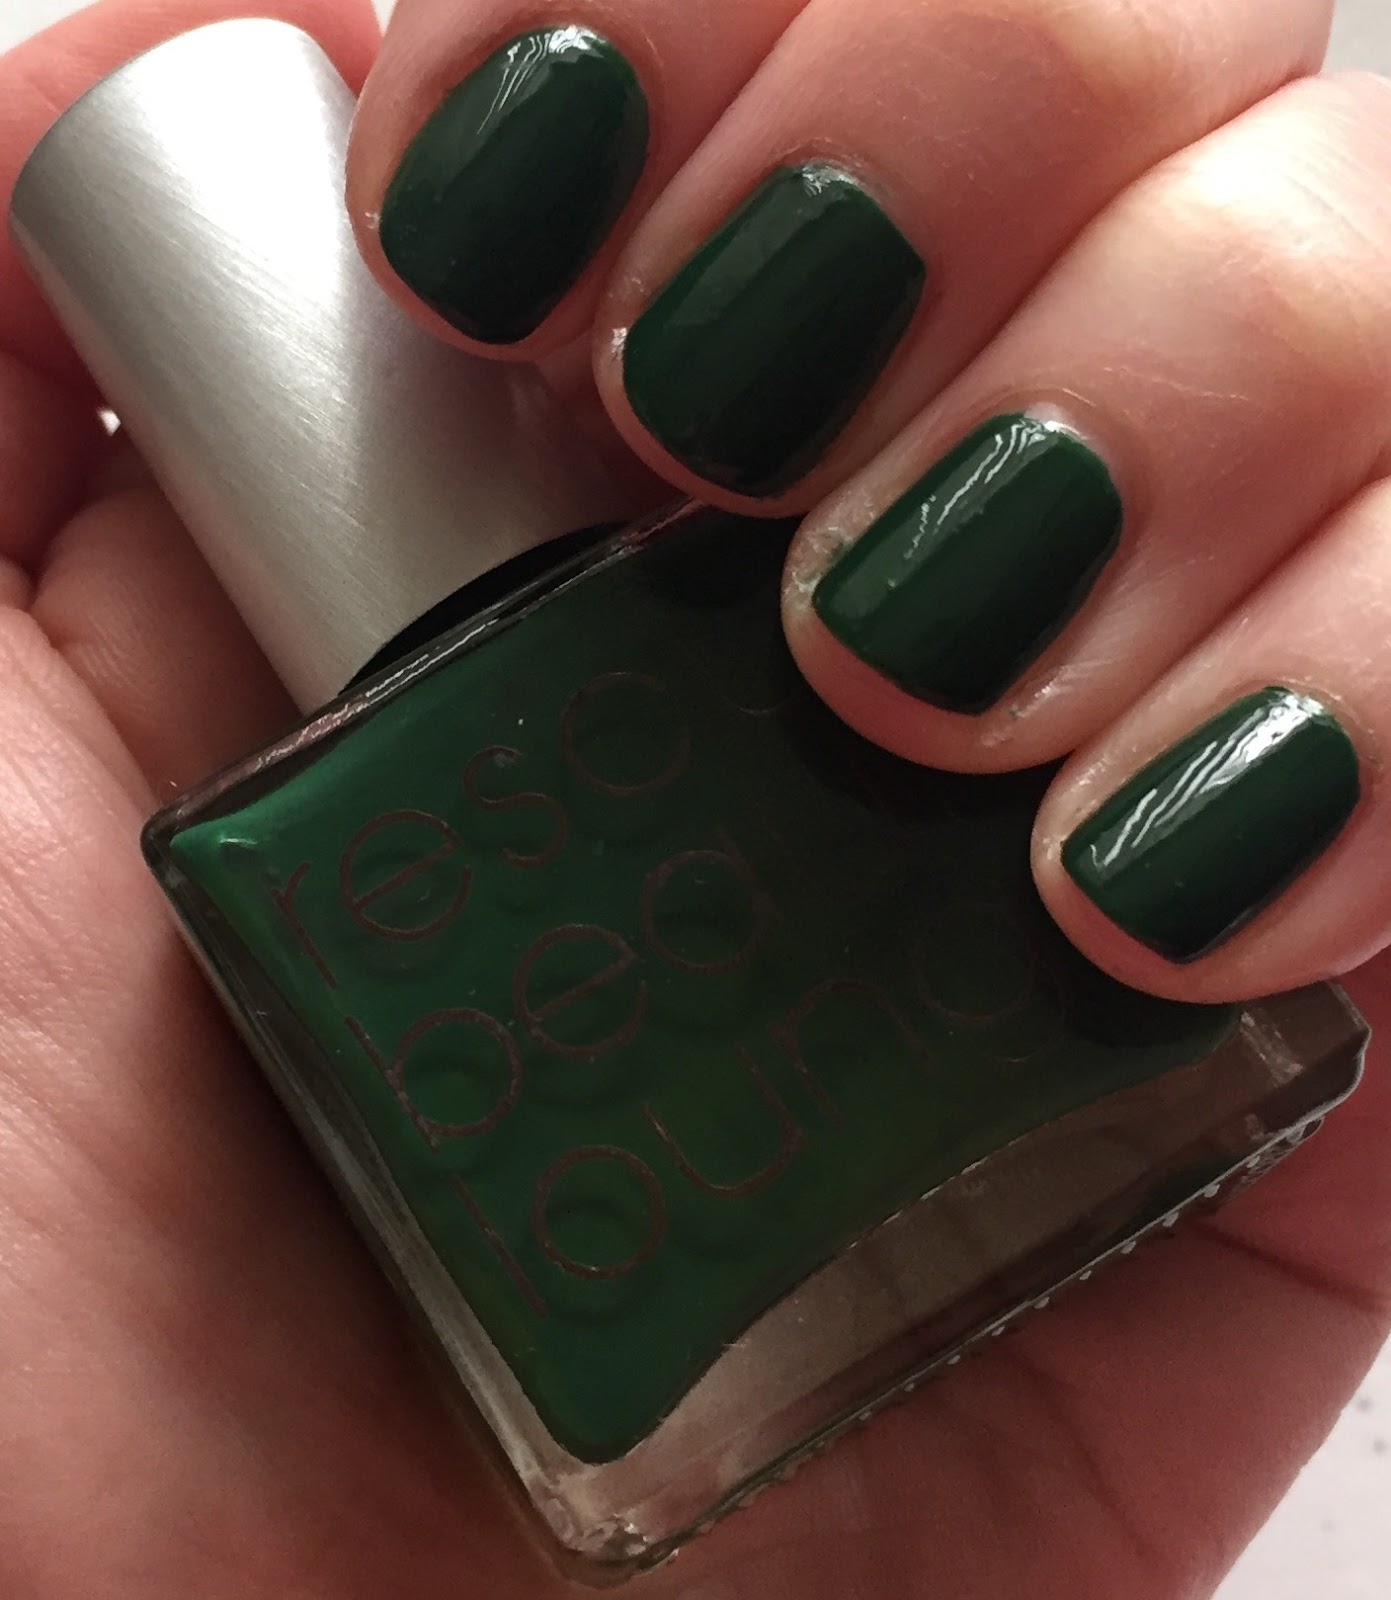 The Beauty of Life: HPB Presents My First Ever Indie Nail Polish ...